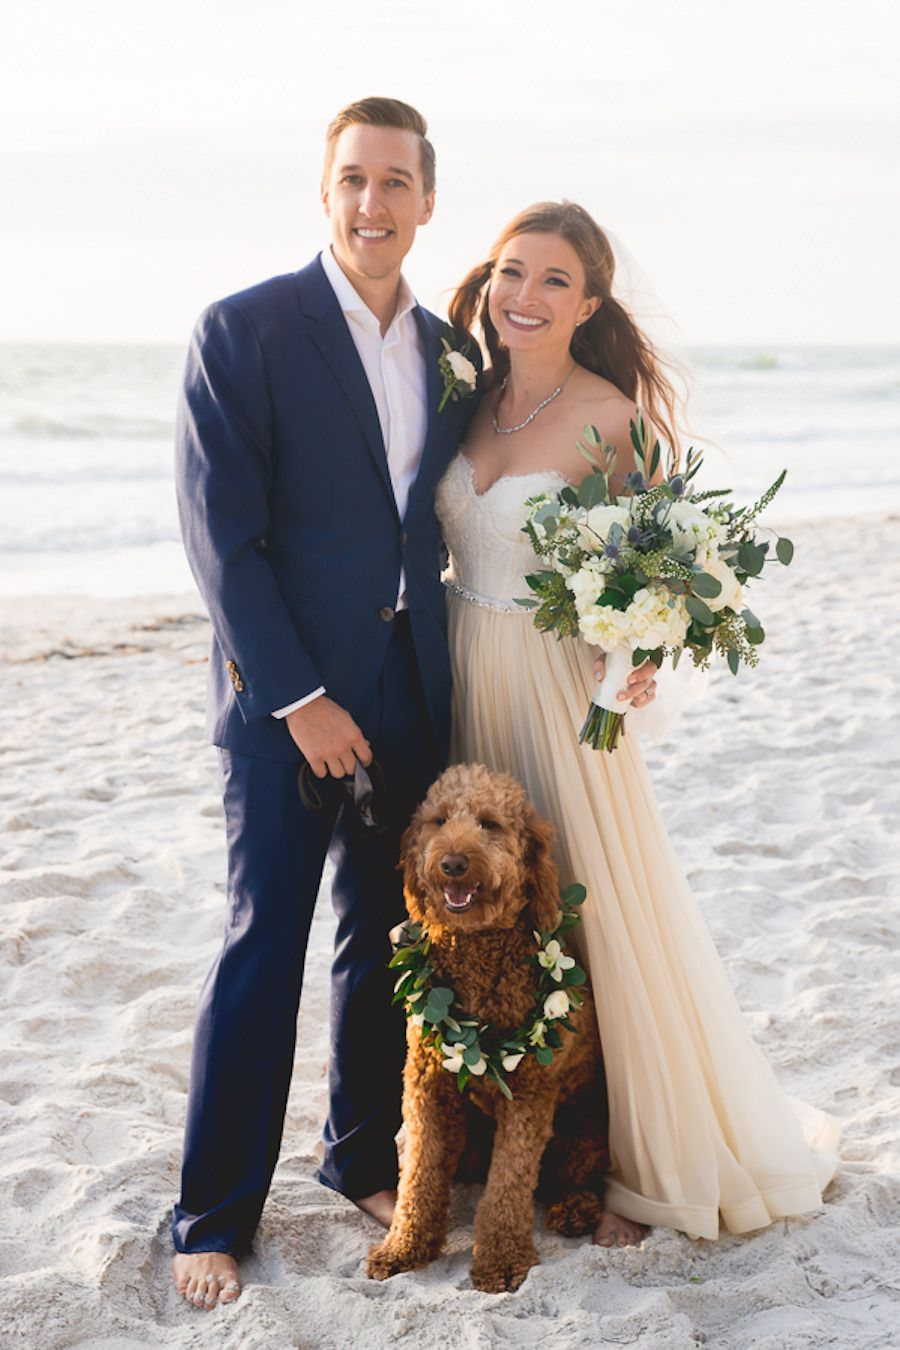 6f90797190 Outdoor, Florida Beach Waterfront Bride and Groom Wedding Portrait with Pet  Goldendoodle | St. Petersburg Wedding Photographer Grind and Press  Photography